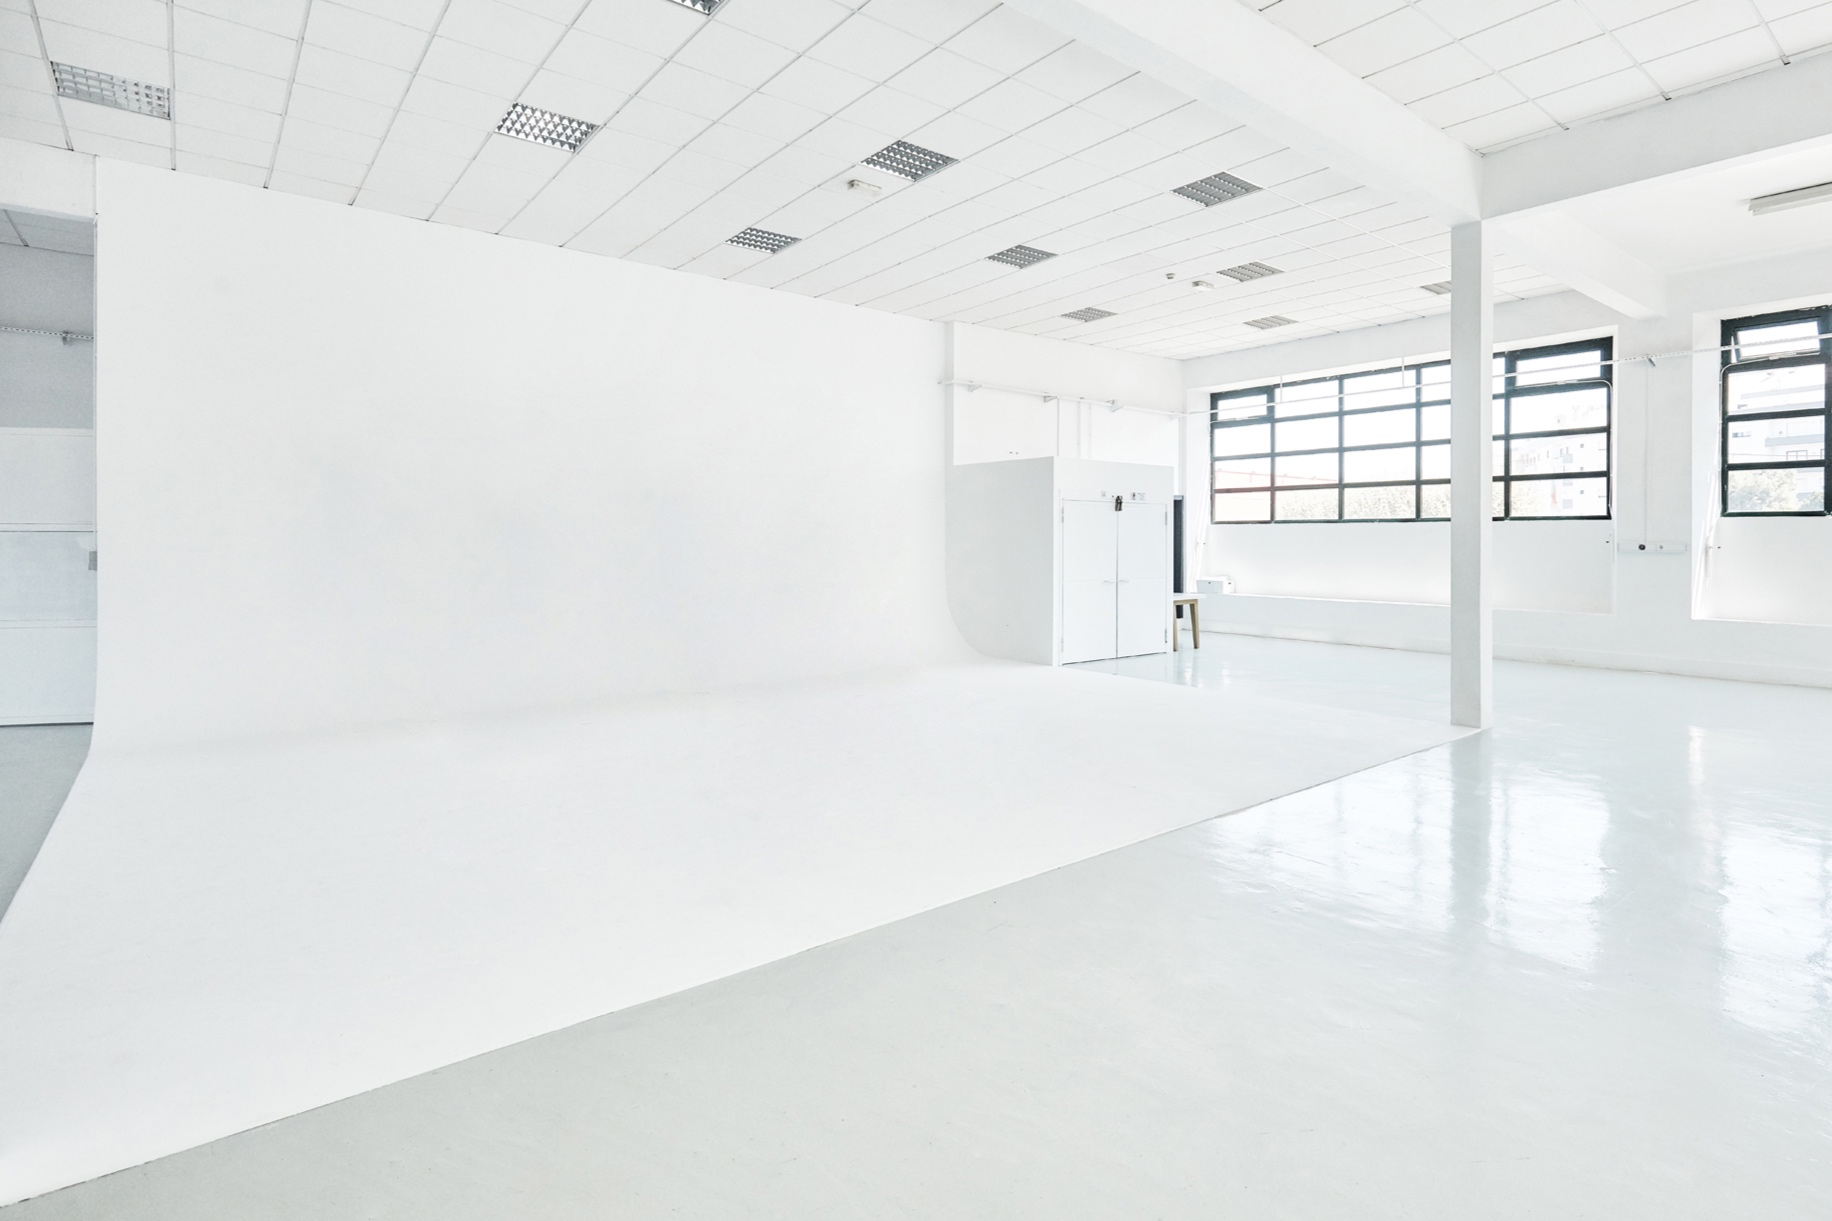 HUGE CYCLORAMA - 50 SQ METRE INFINITY WHITE BACKGROUND (6 x 8,5 M) OR WHATEVER COLOUR YOU FEEL LIKE